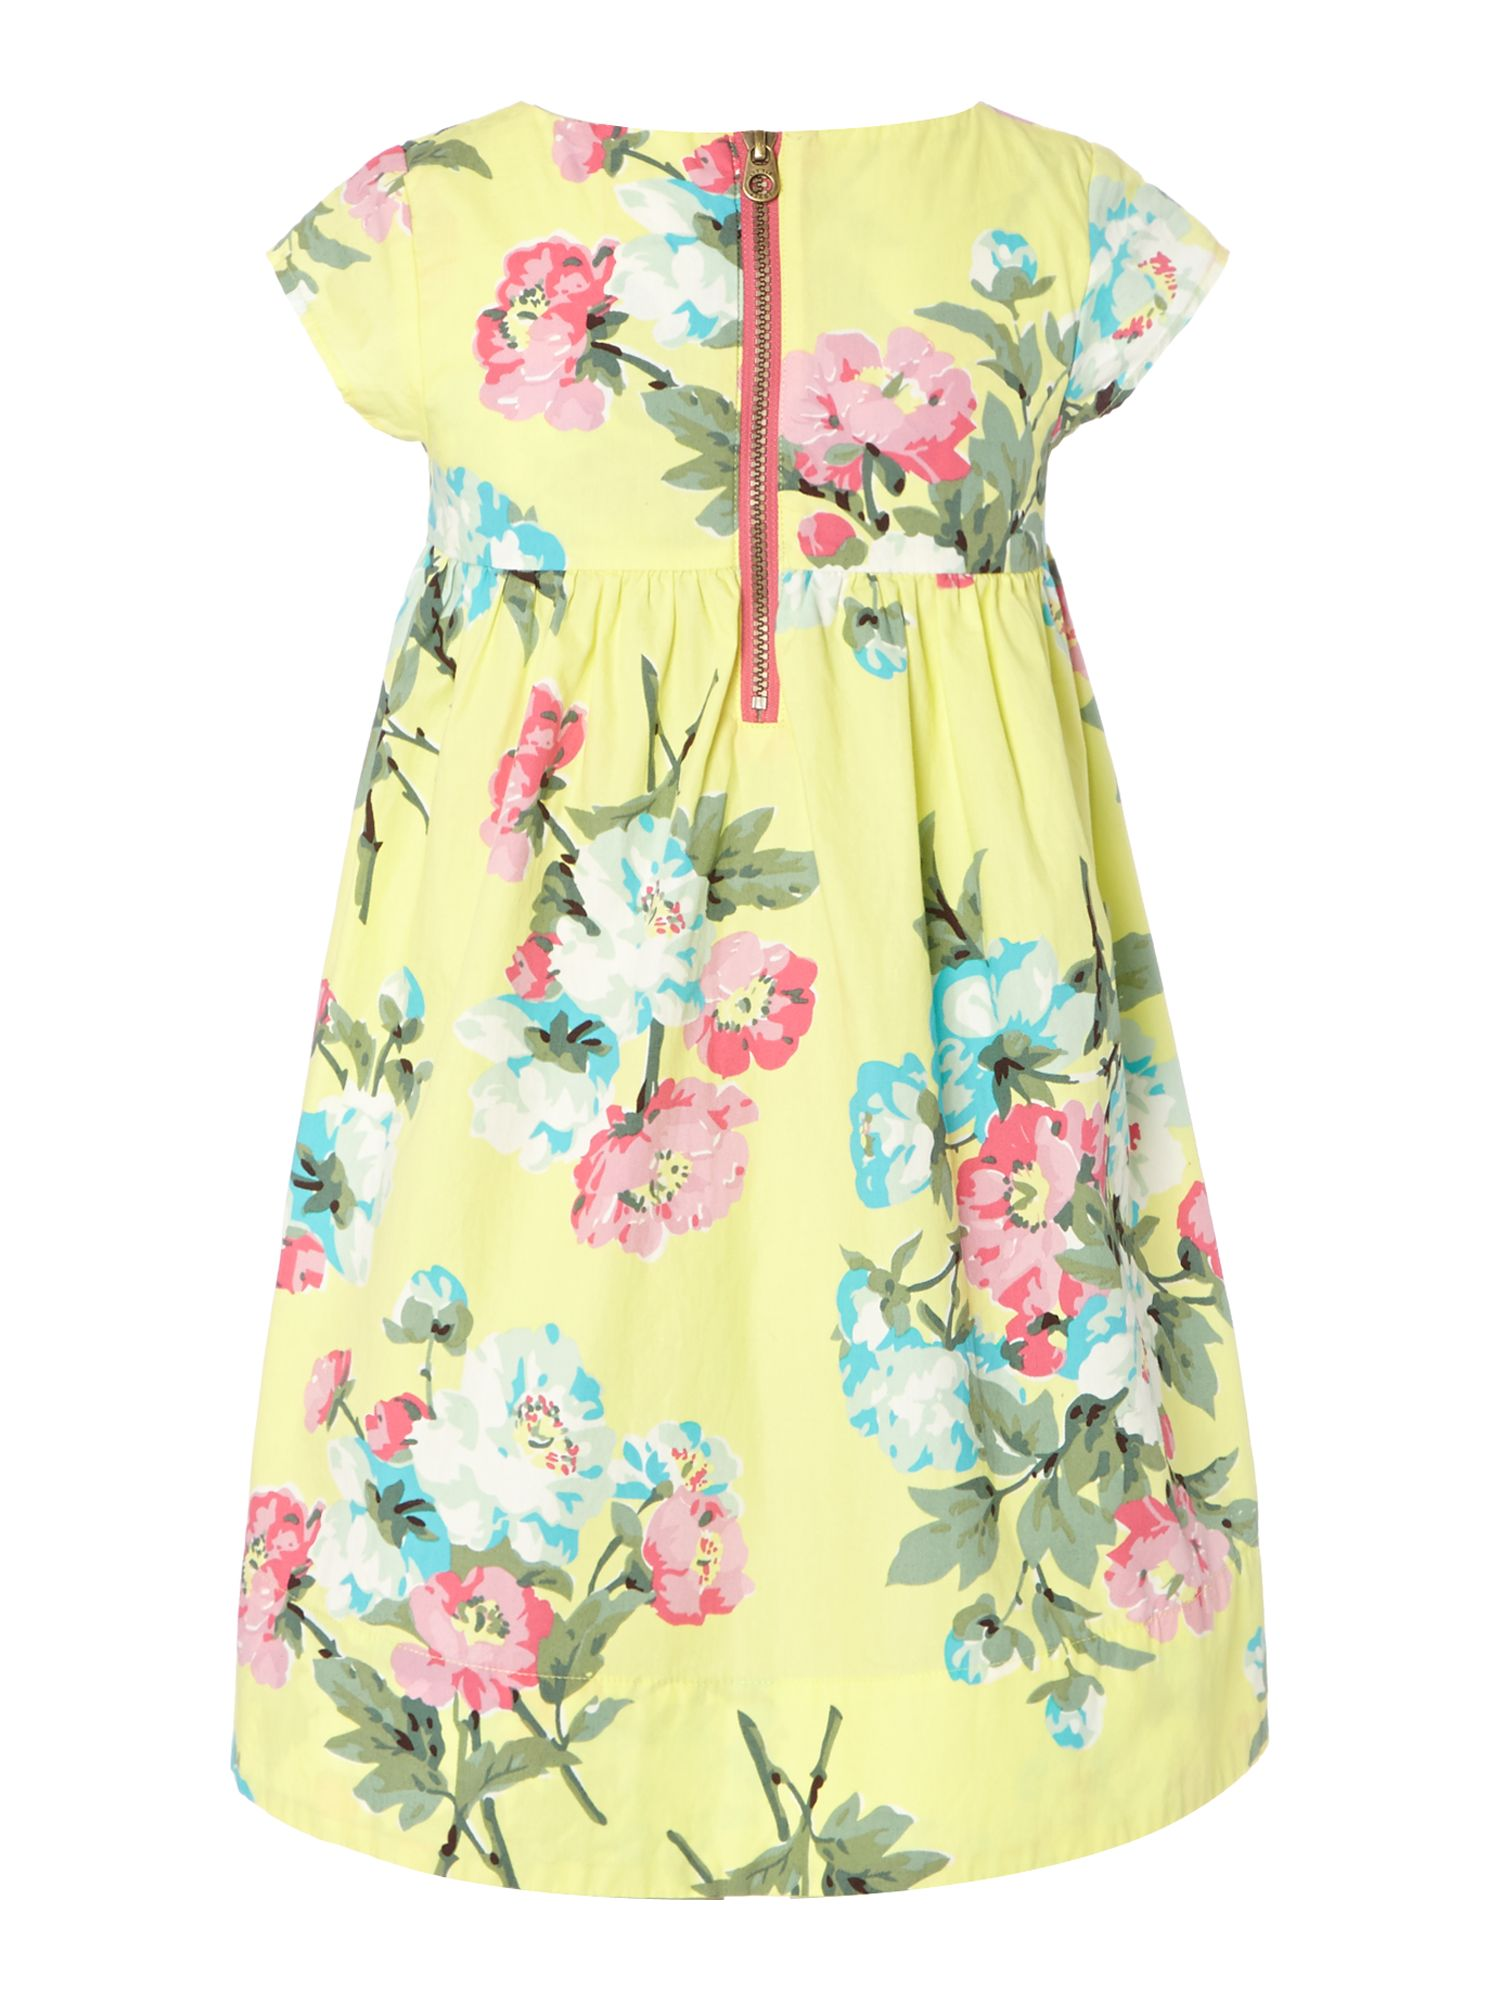 Girls floral smock dress